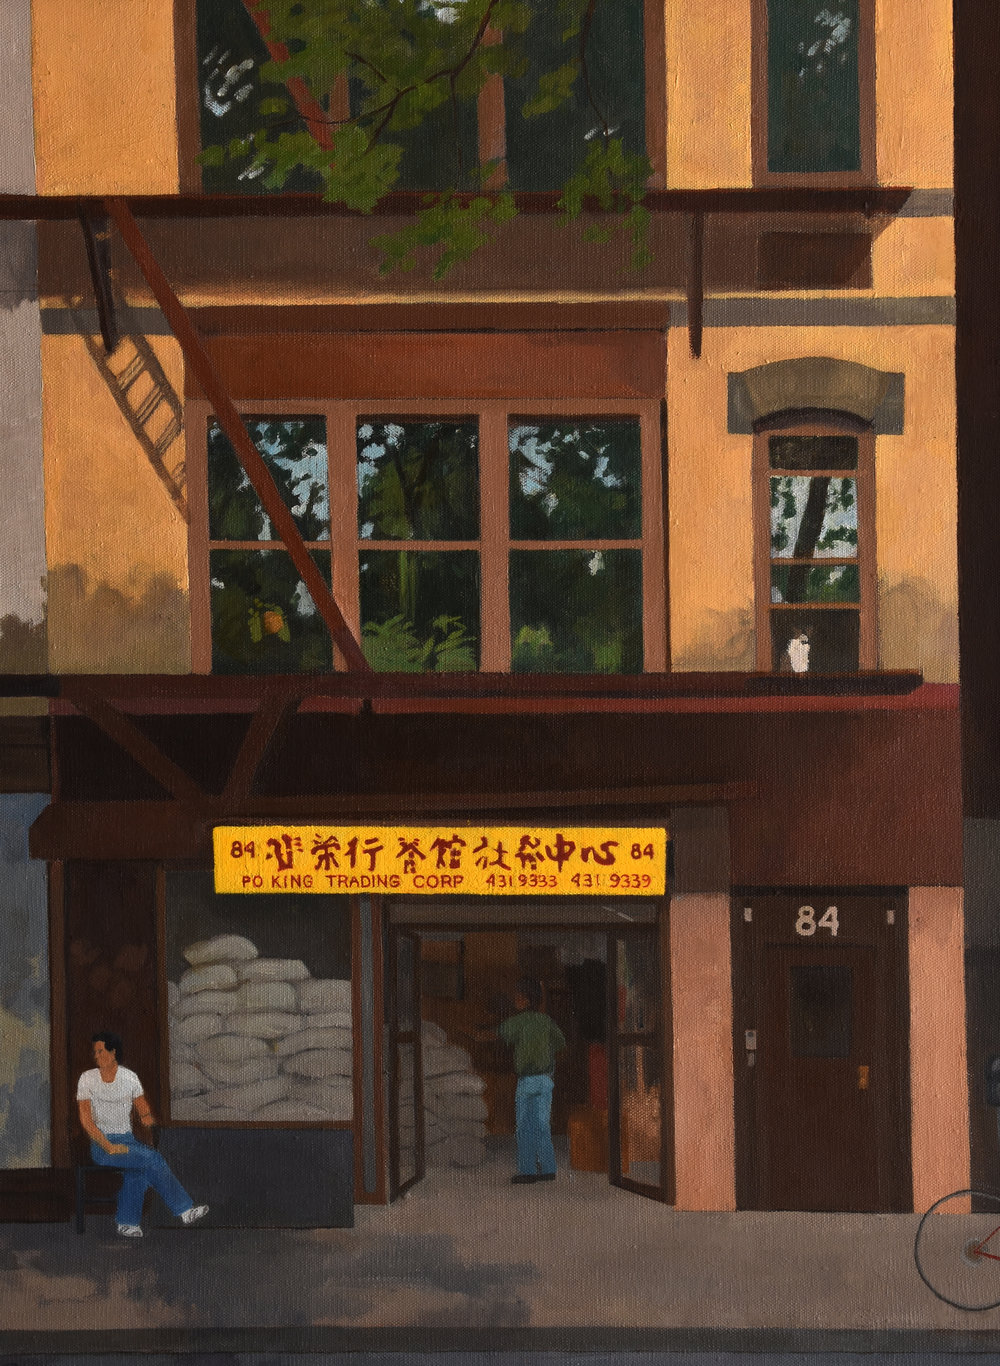 "84 Forsyth Street, oil on canvas, 24"" x 18"""